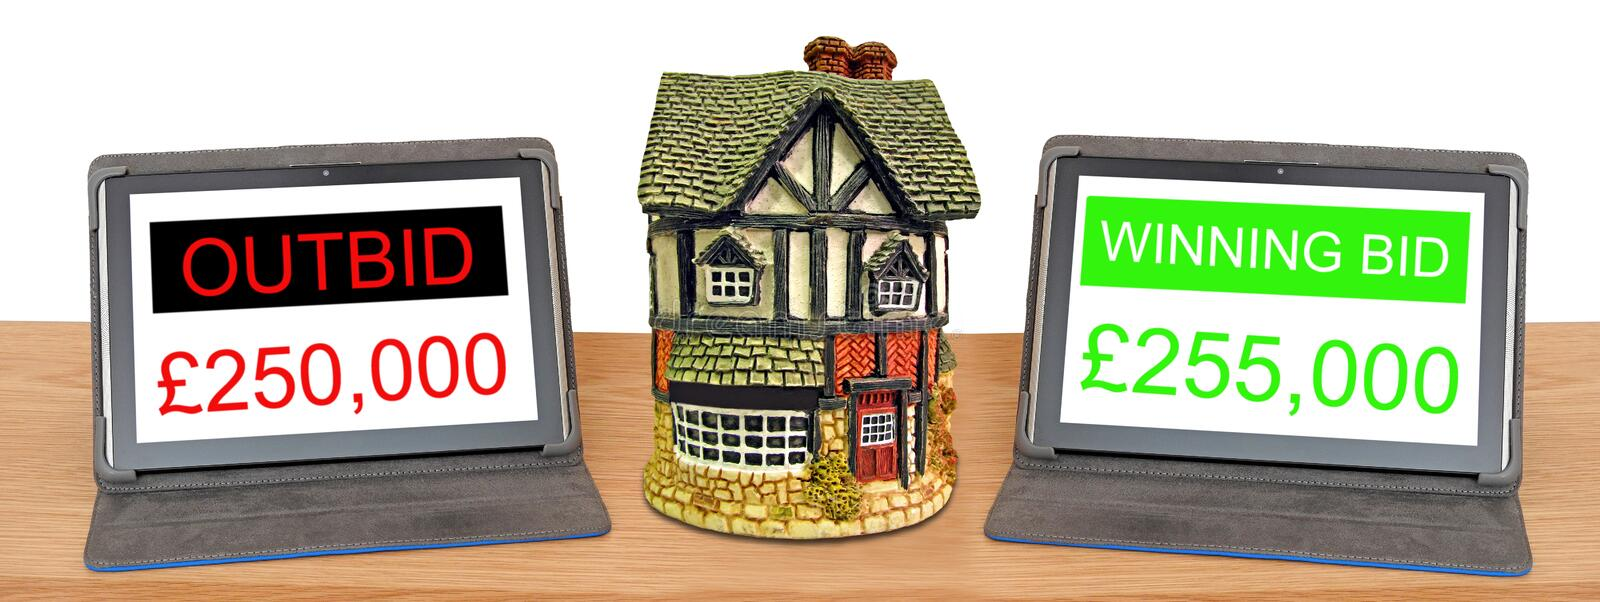 Computer internet online property auction bidding. Concept photo of internet online auction property sales bidding showing two tablets bidding for property home stock image